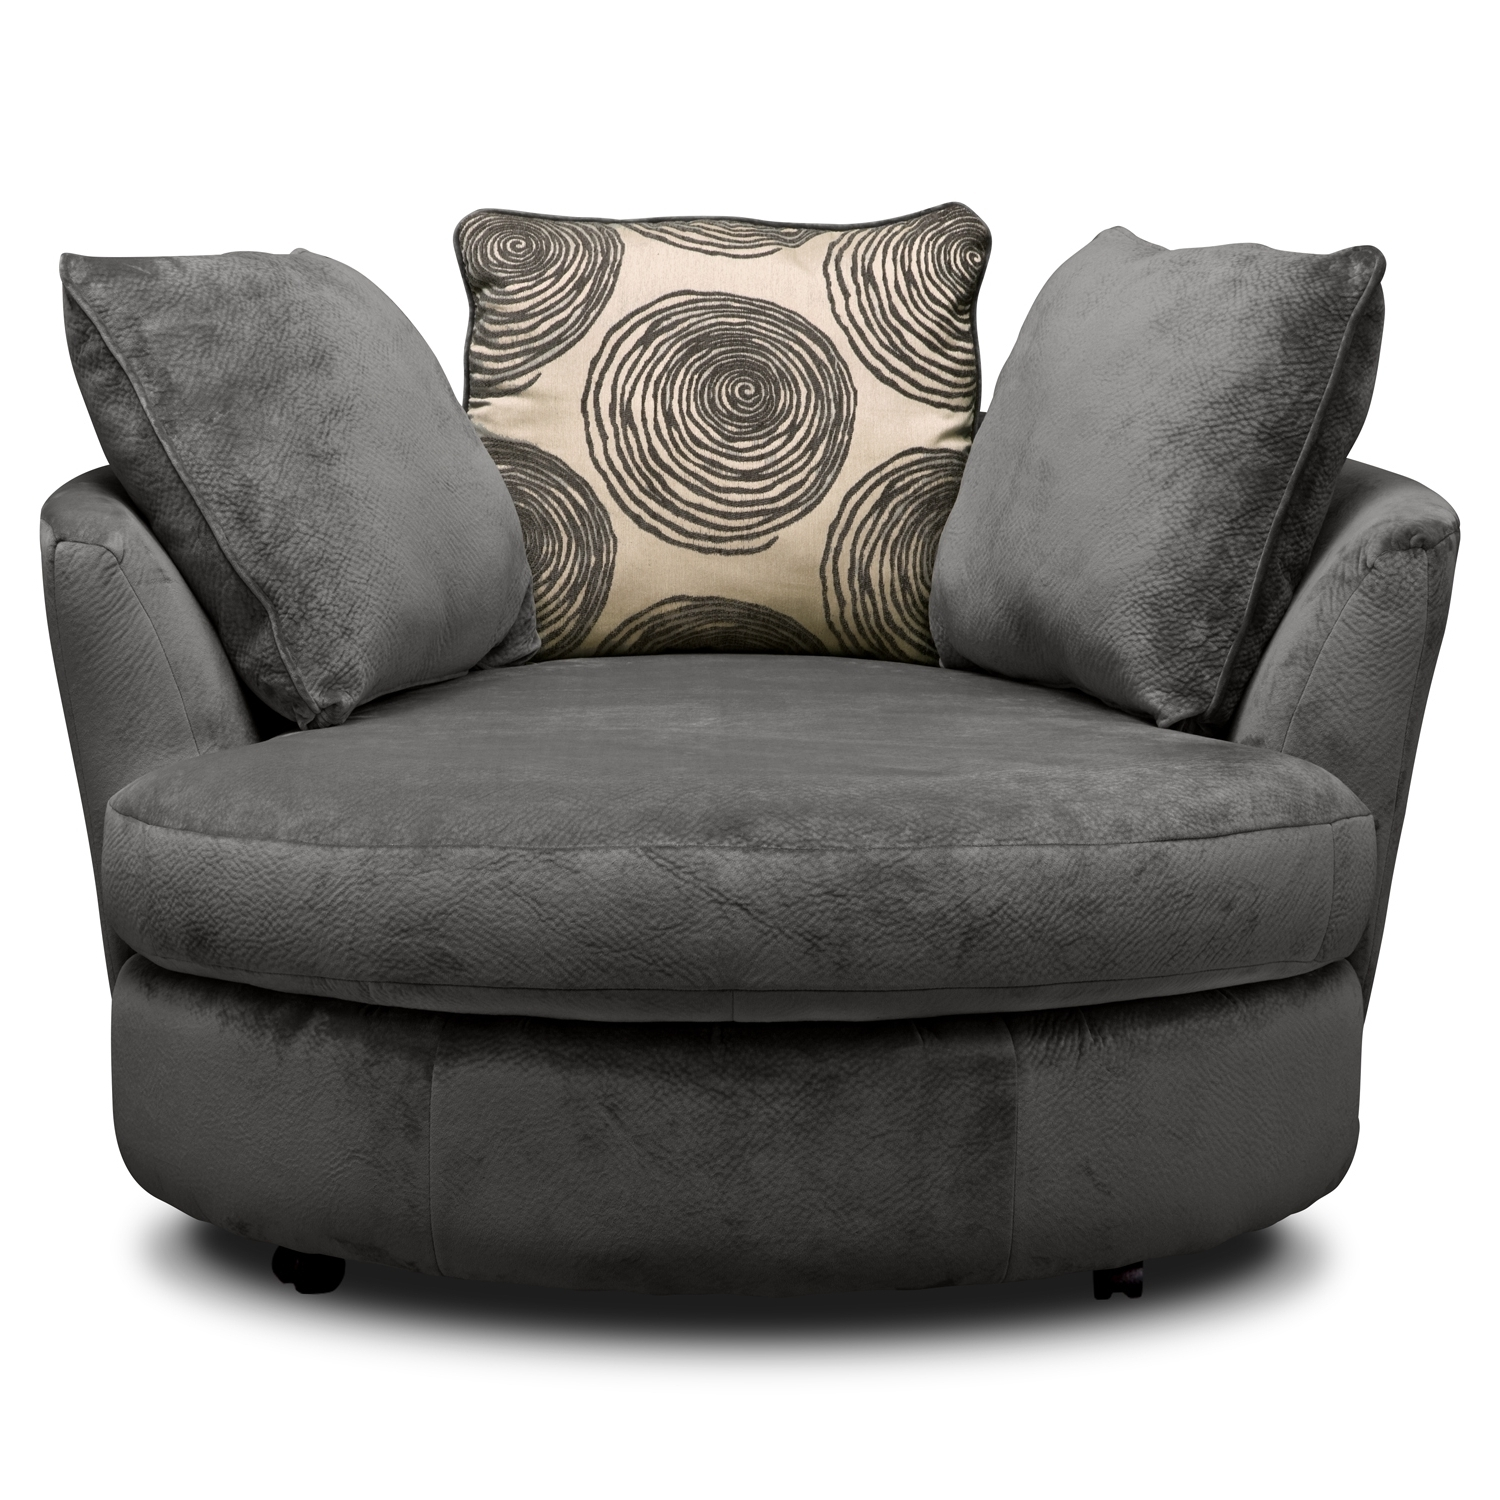 2019 Large Round Swivel Sofa (View 2 of 20)